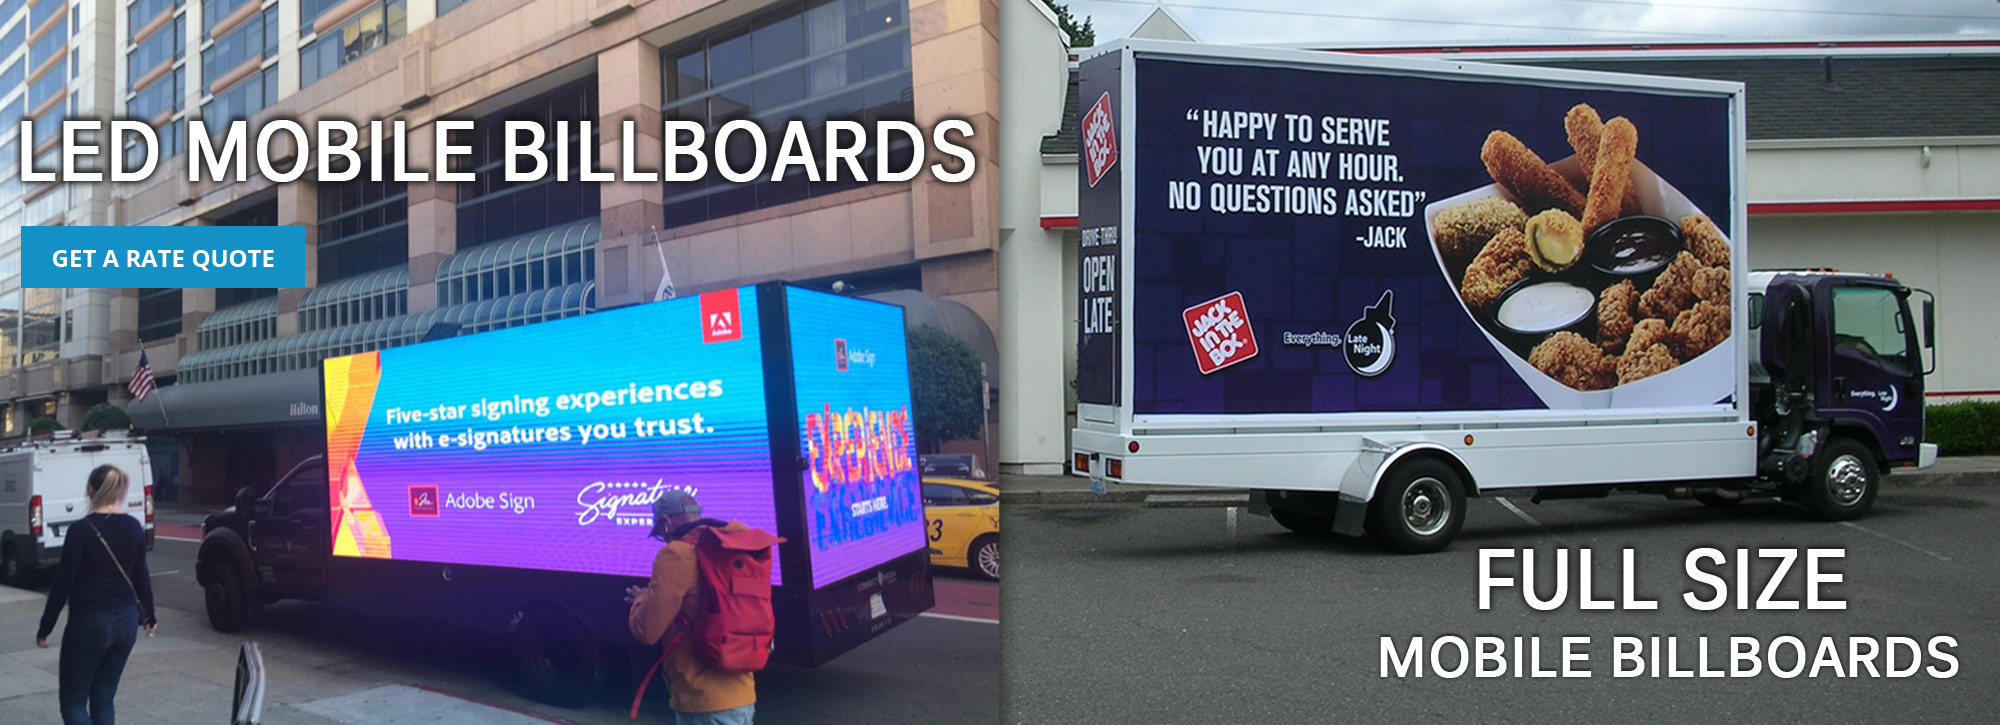 Full Sized Traveling Billboards And LED Mobile Billboards